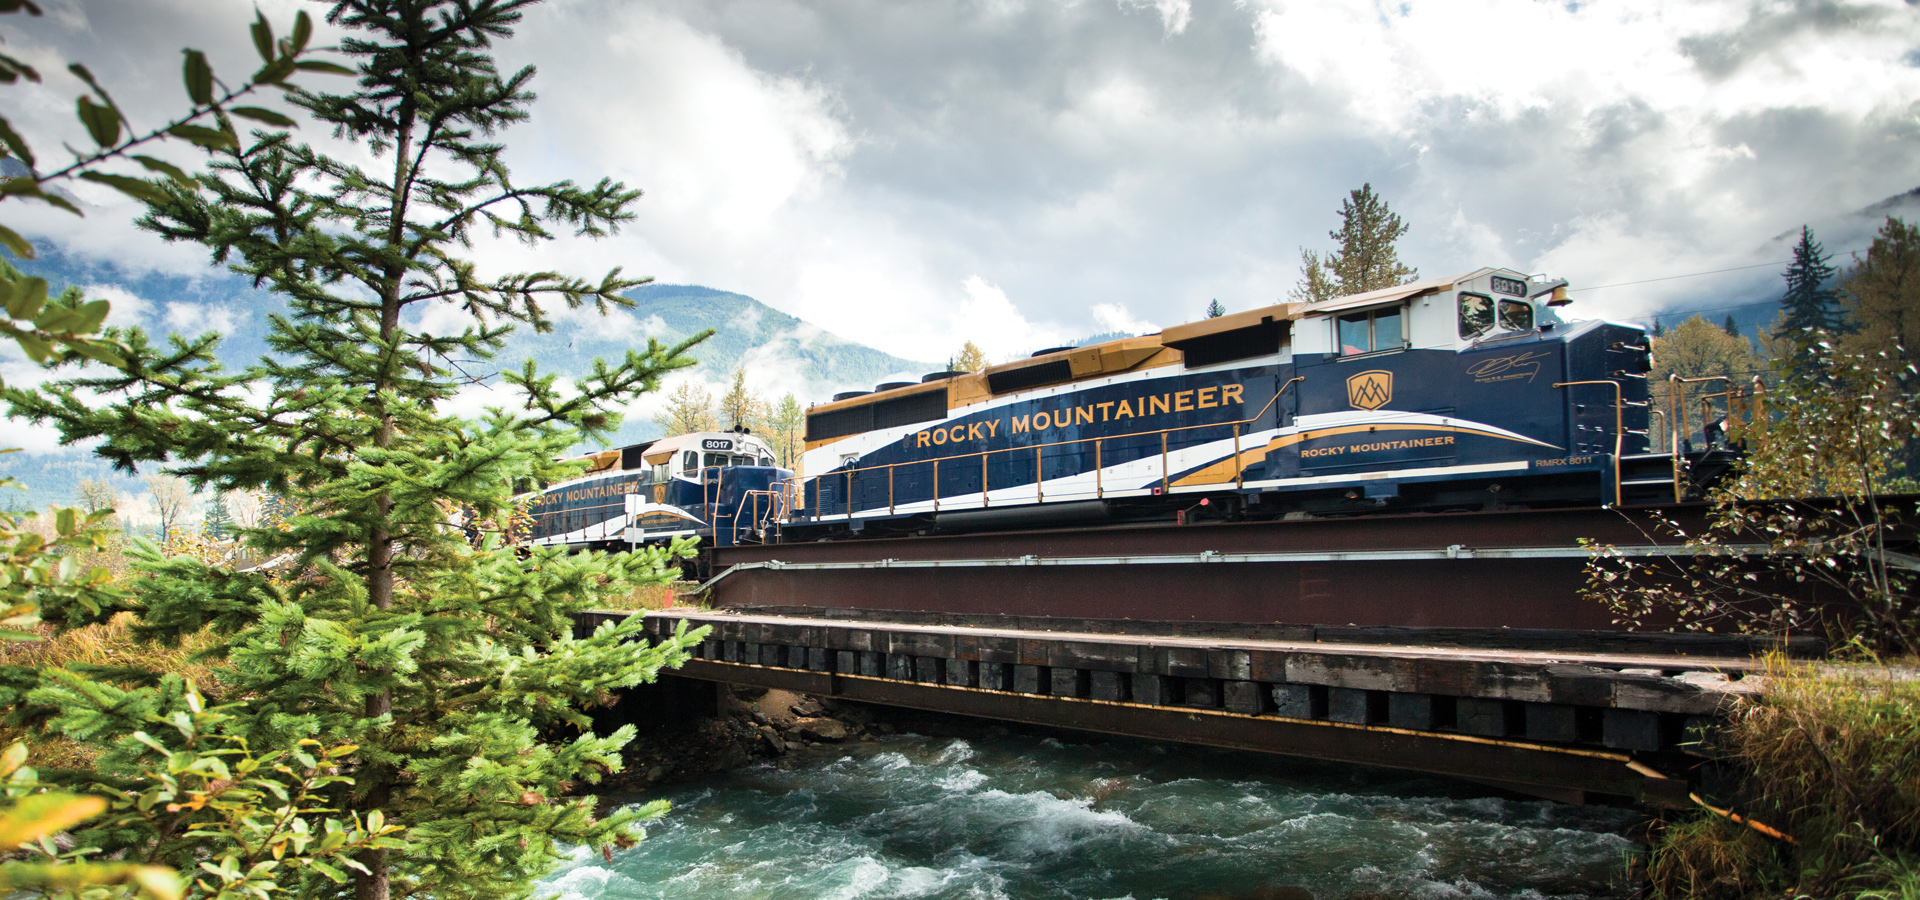 Western Canada Cruising | Dining on the Rocky Mountaineer